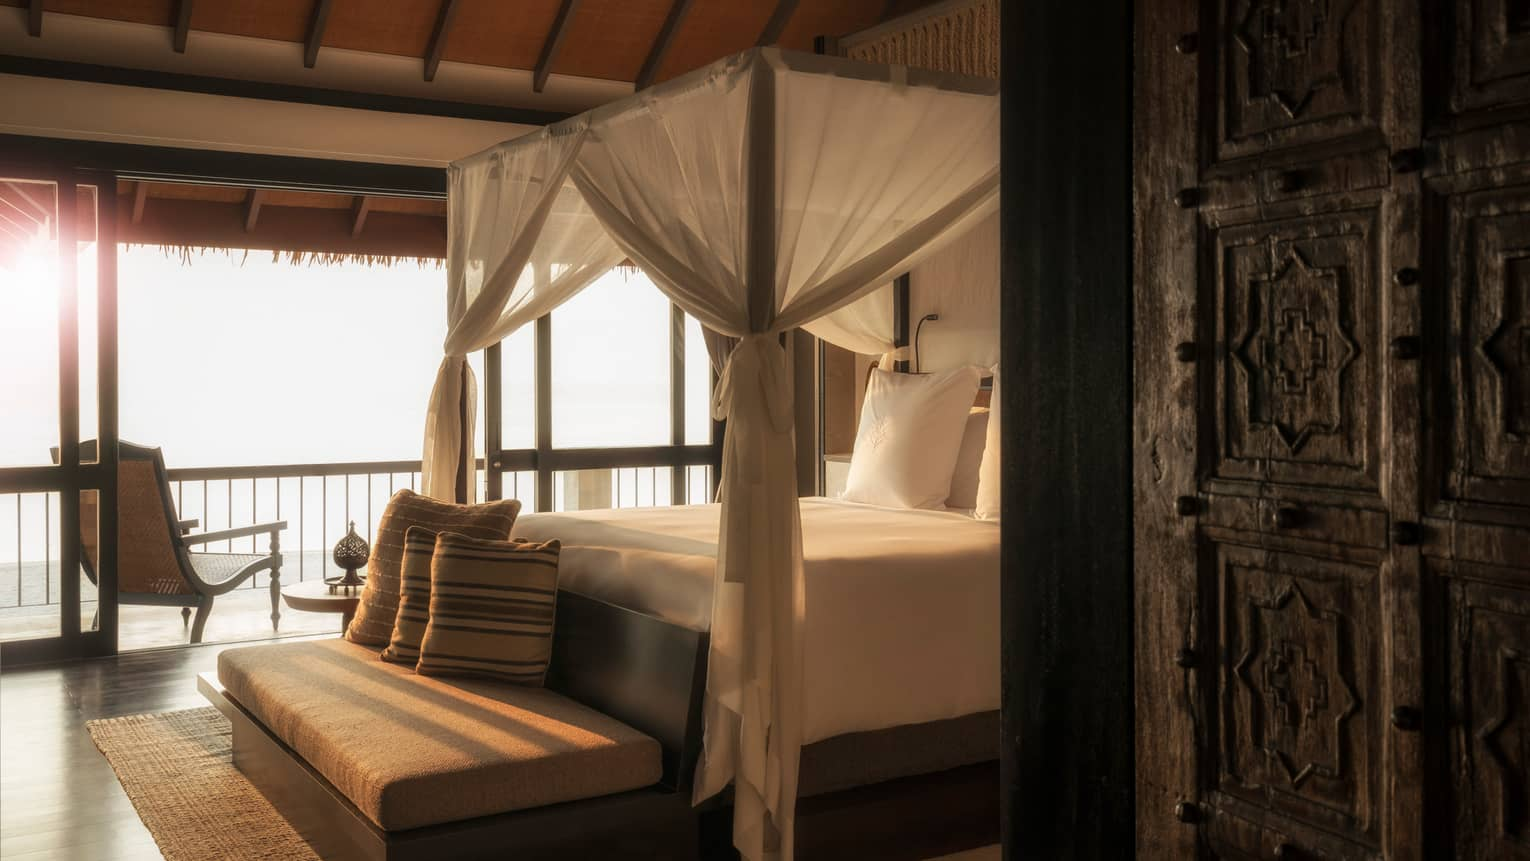 Mezzanine Suites cushioned bench with pillow at foot of canopy bed with white curtains in sunlight